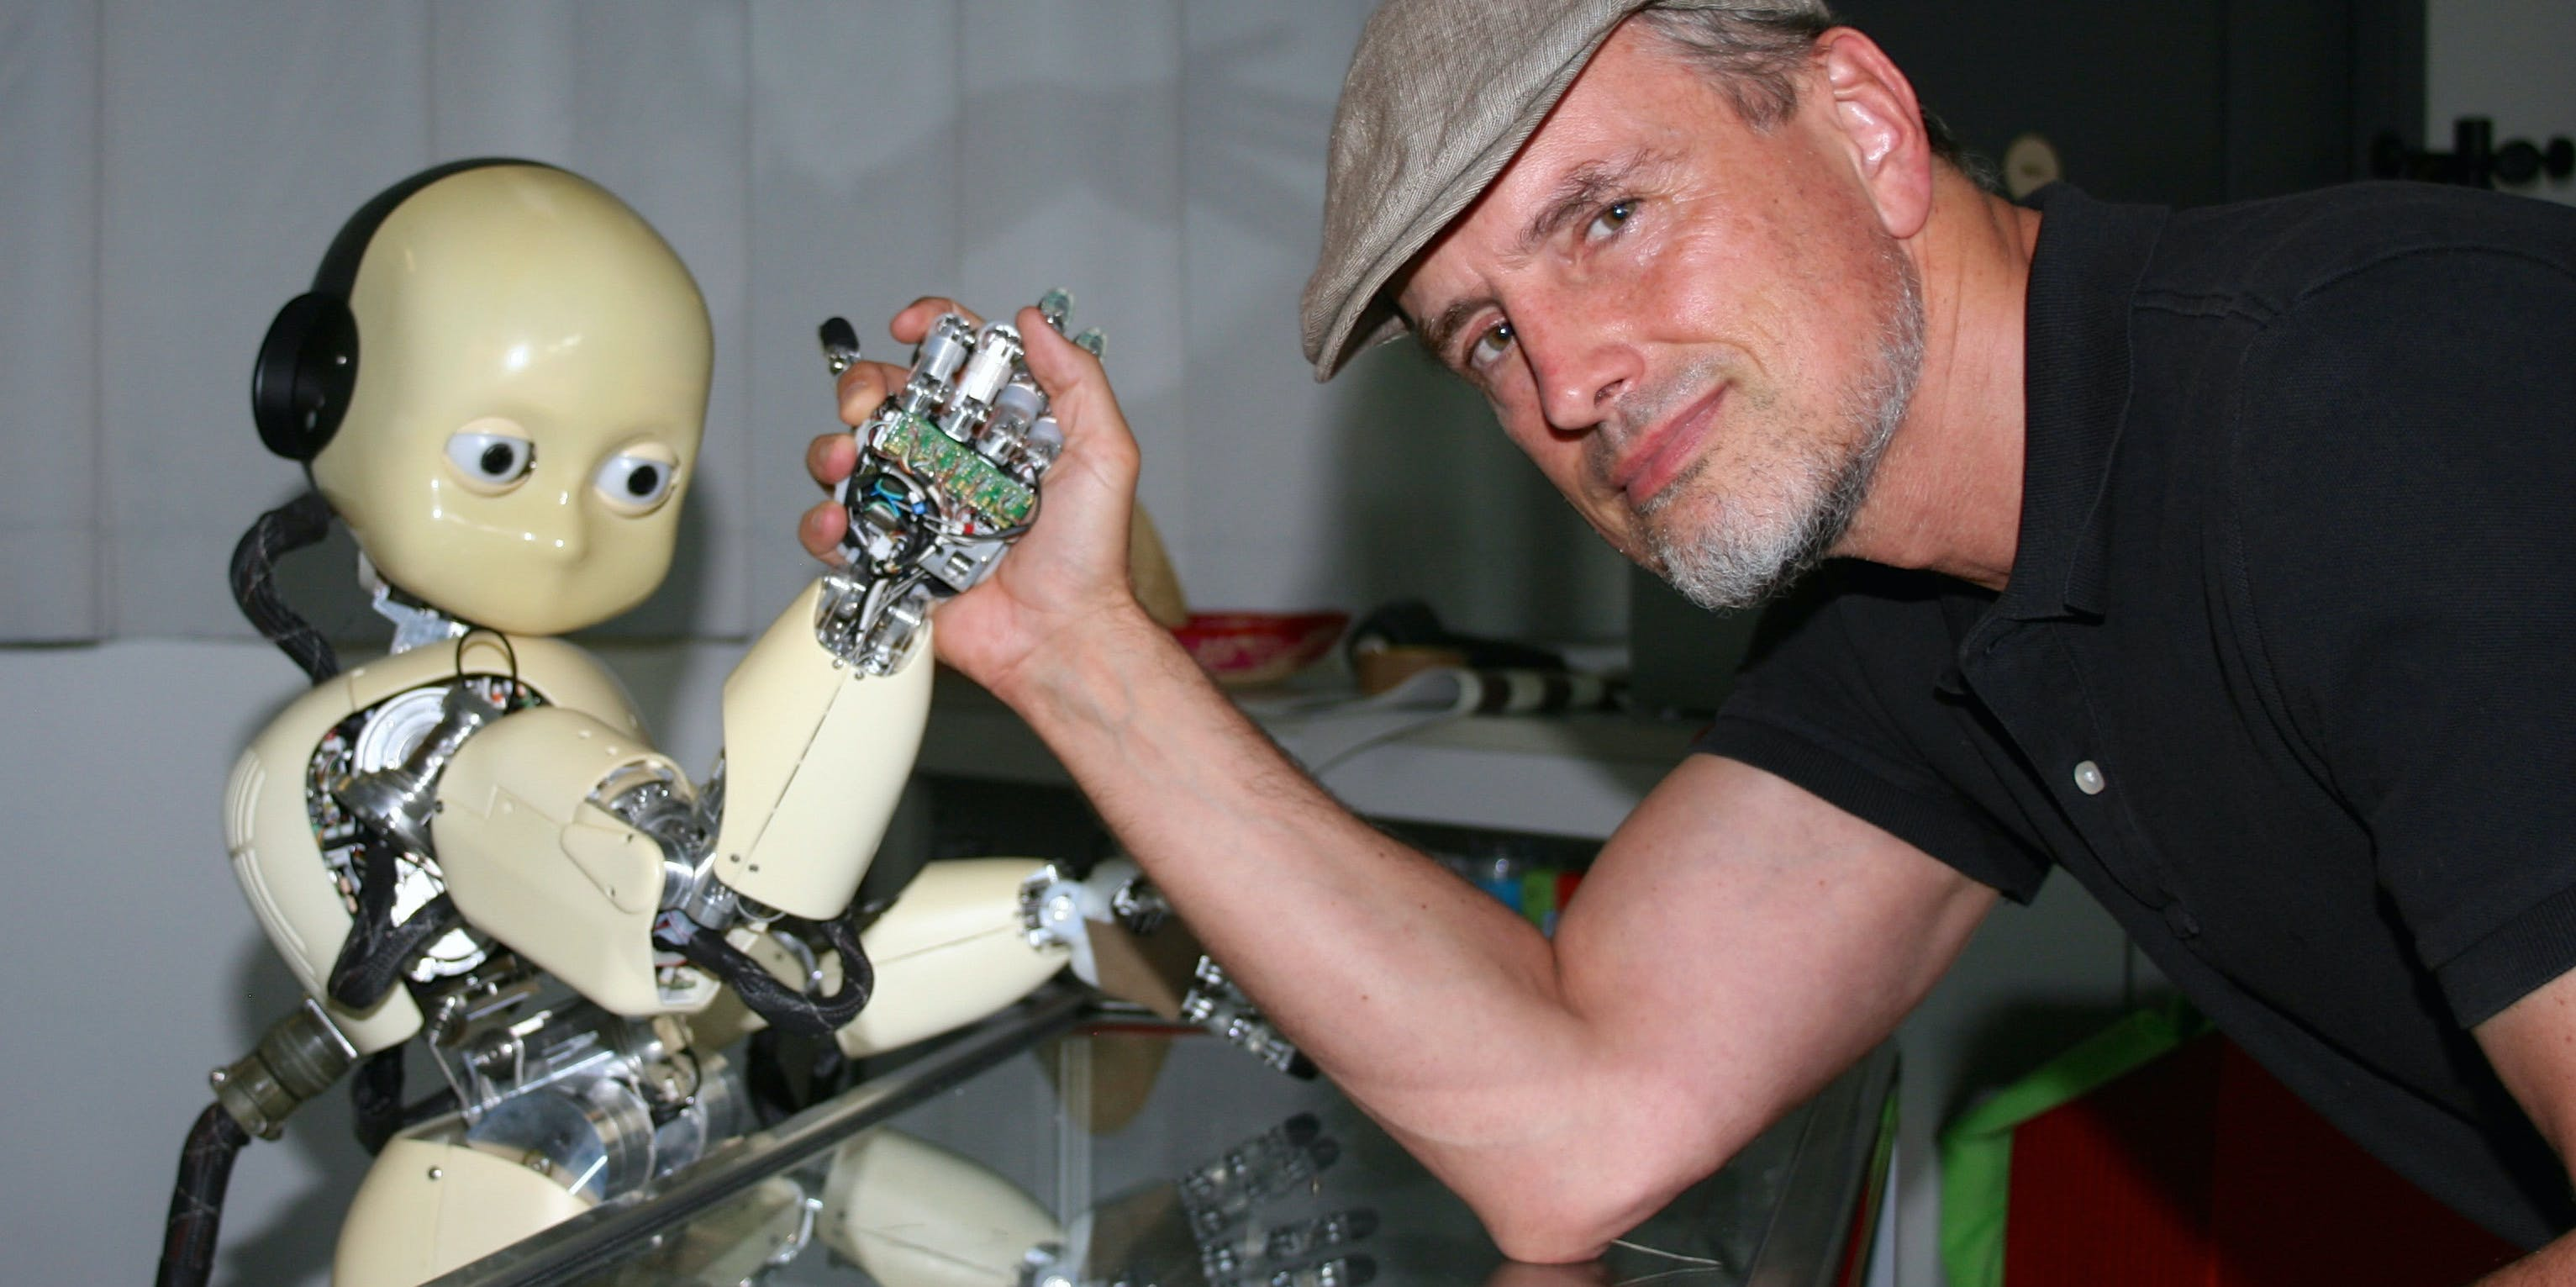 Schmidhuber with an android.